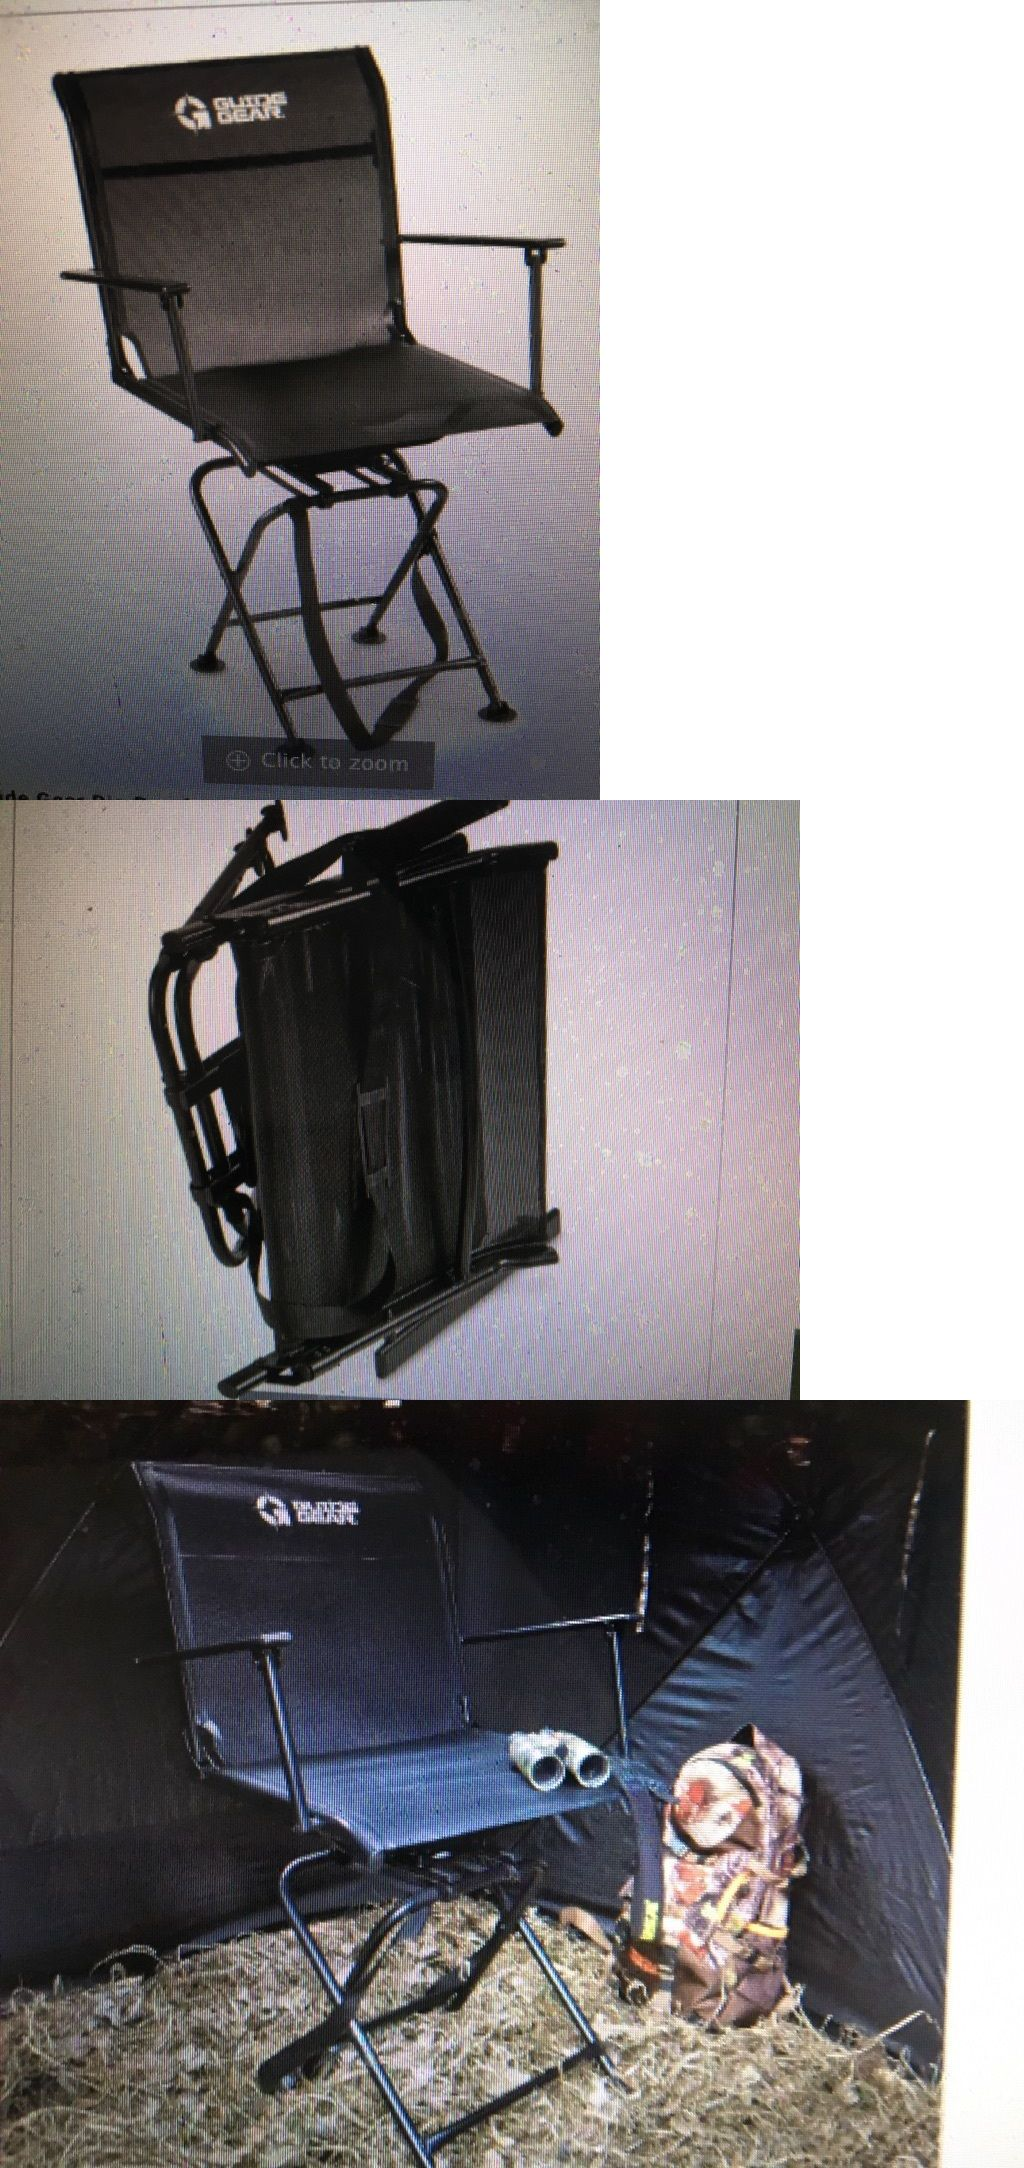 Seats and Chairs New 360 Swivel Hunting Blind Chair Guide